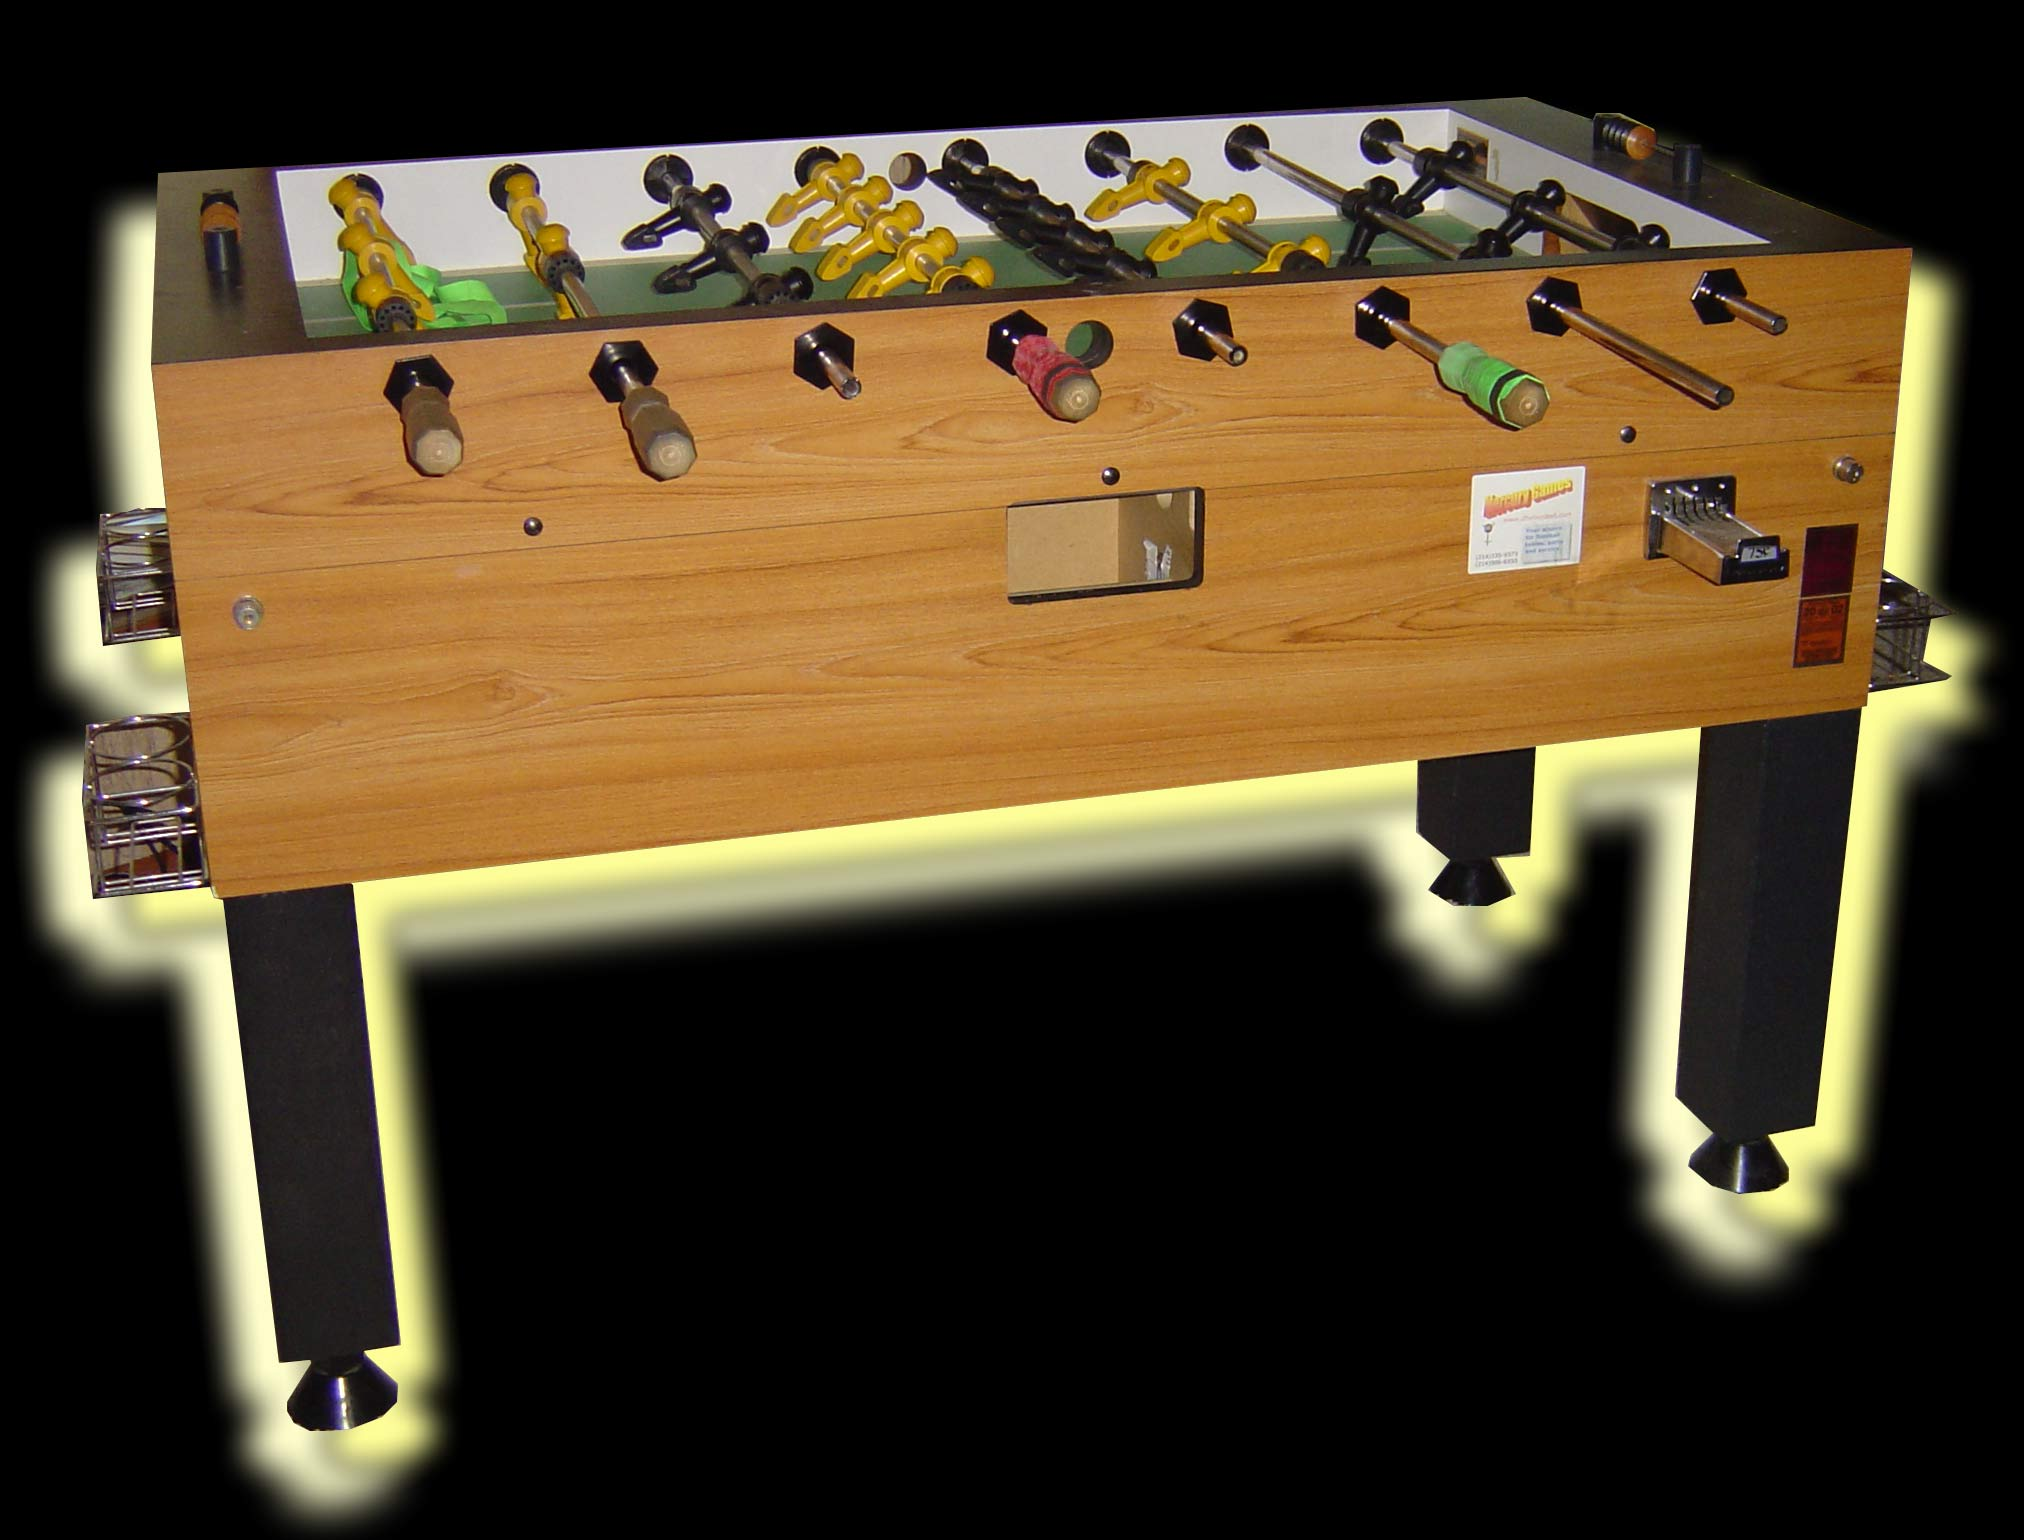 Tornado Foosball Table For Sale - Where to buy foosball table